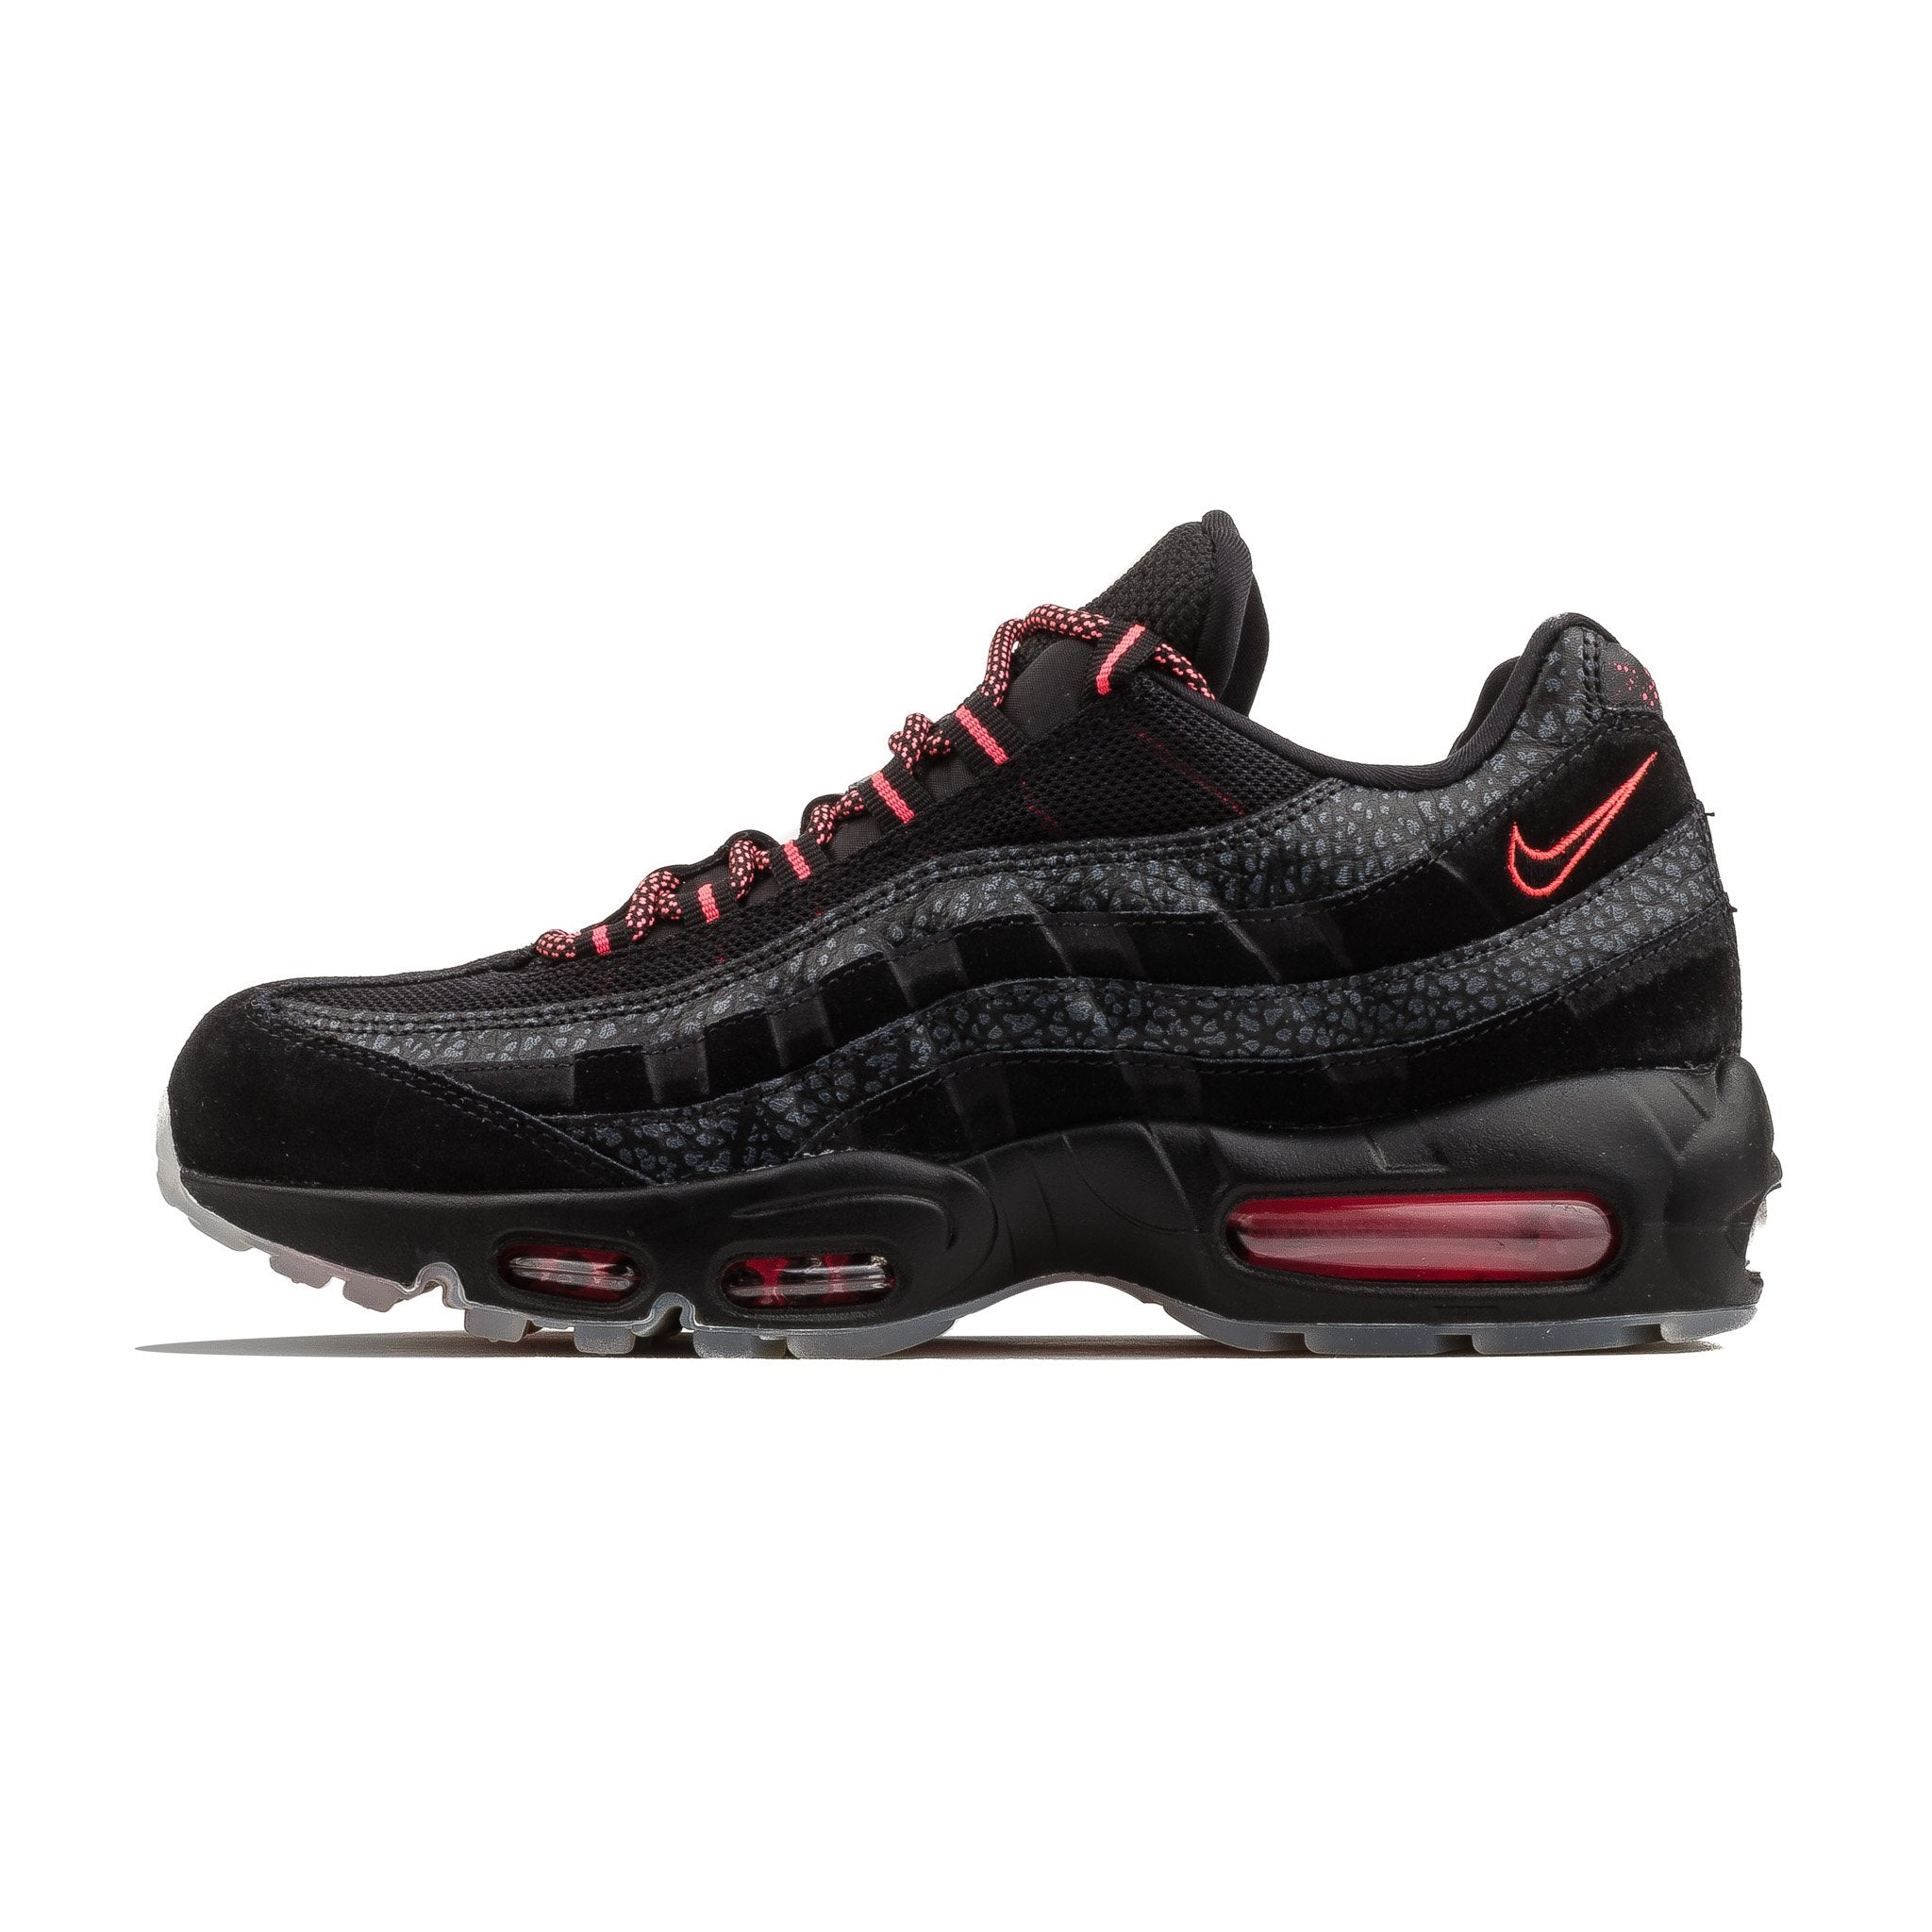 Details about NIKE AIR MAX 95 SAFARI KEEP RIPPIN STOP SLIPPIN SNEAKERS MEN SHOES AV7014 002